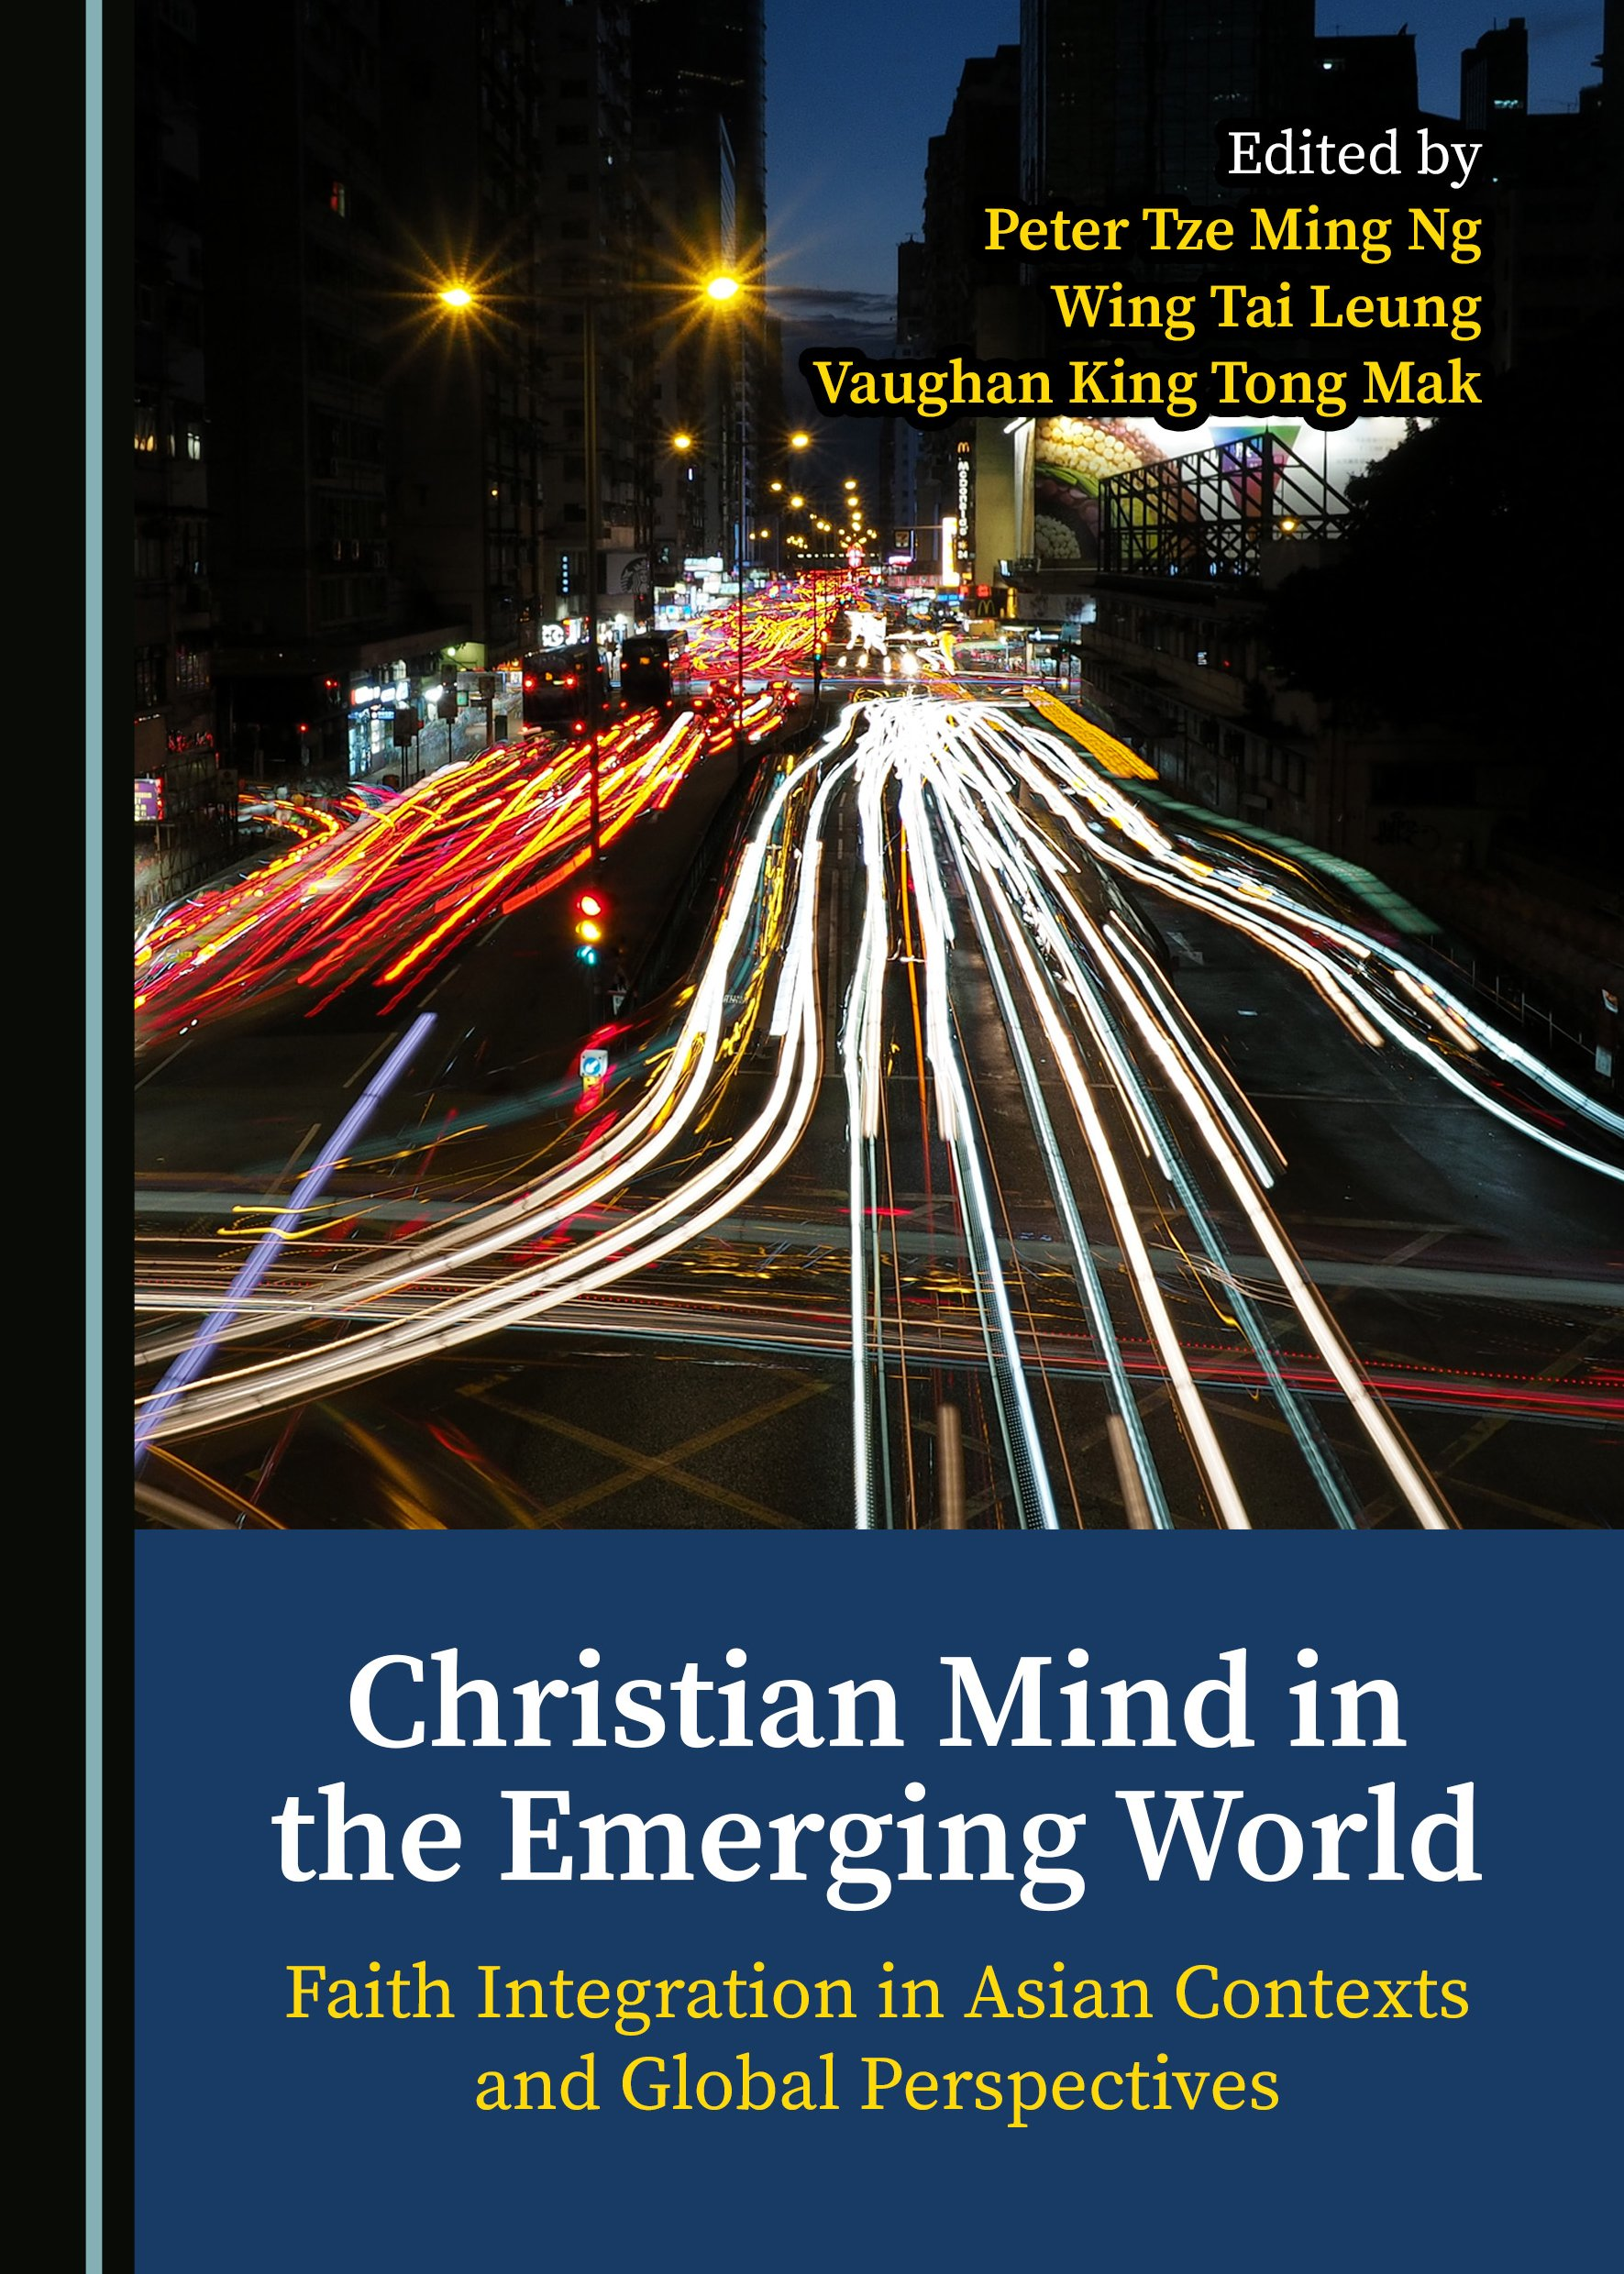 Christian Mind in the Emerging World: Faith Integration in Asian Contexts and Global Perspectives